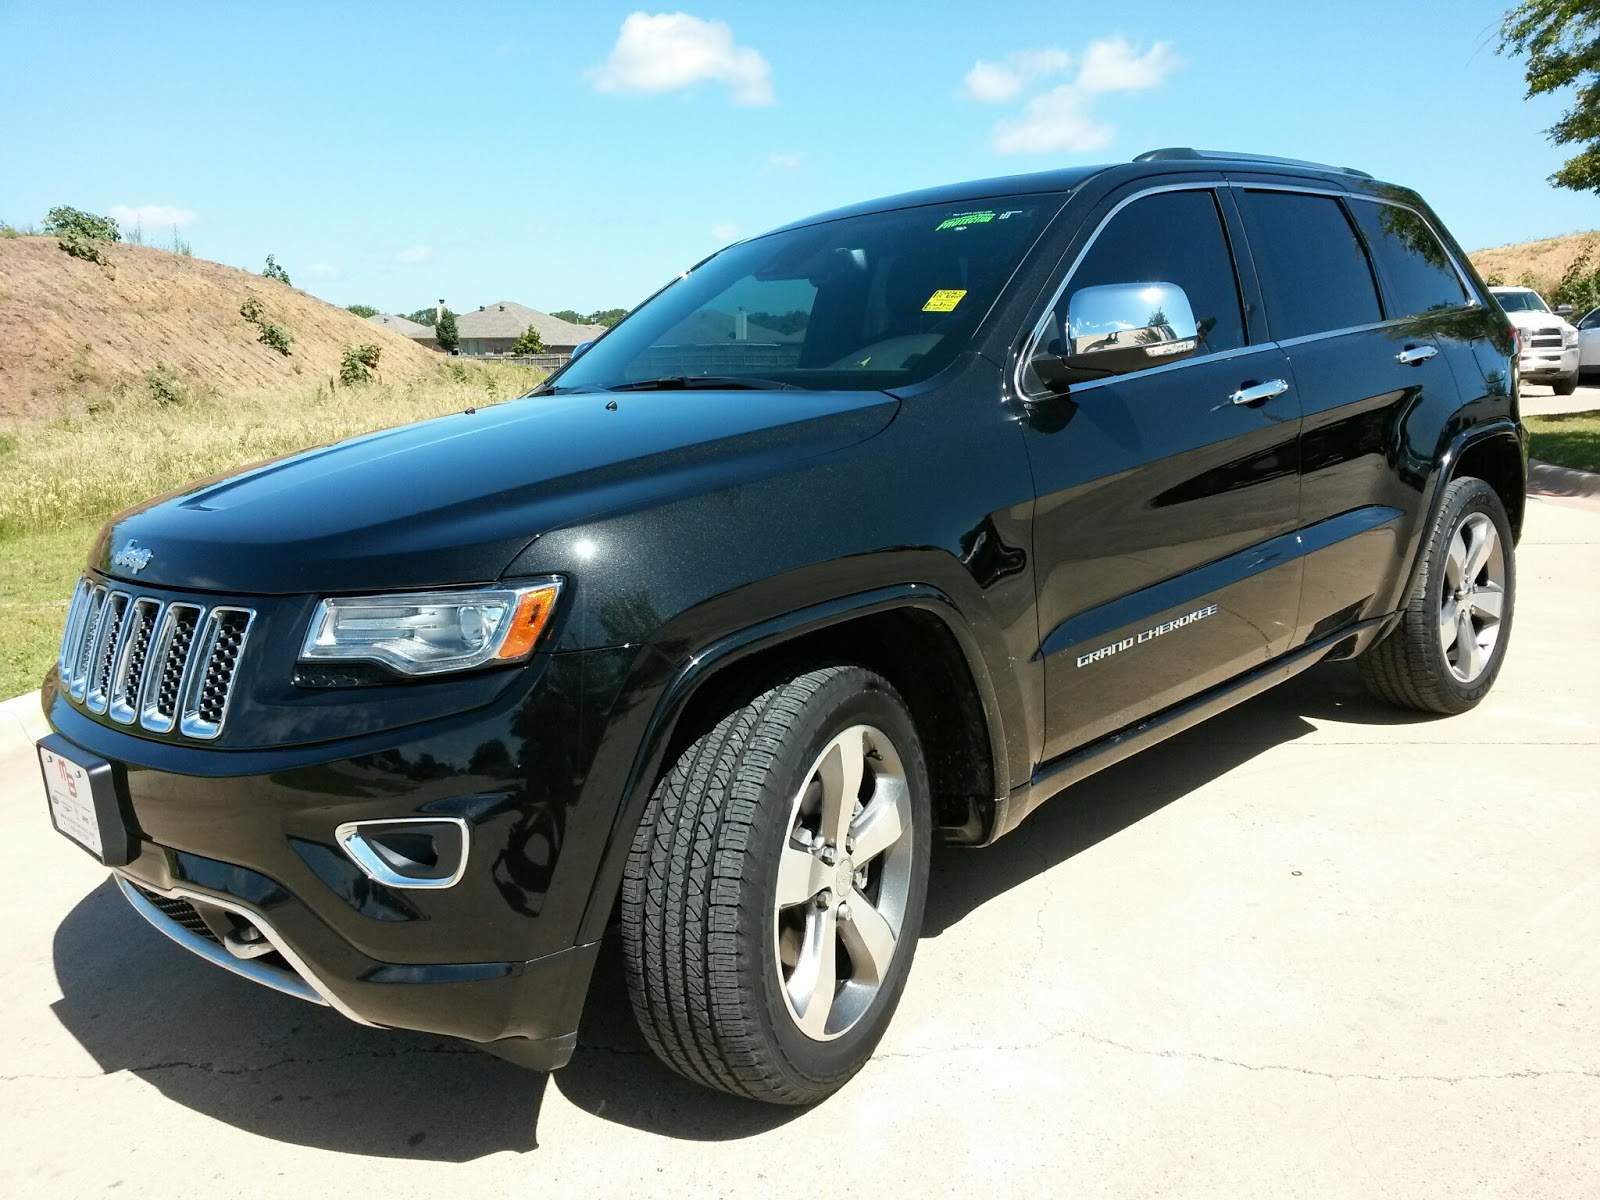 week review show quarter jeep three test and summit cherokee one more diesel grand ecodiesel front road news